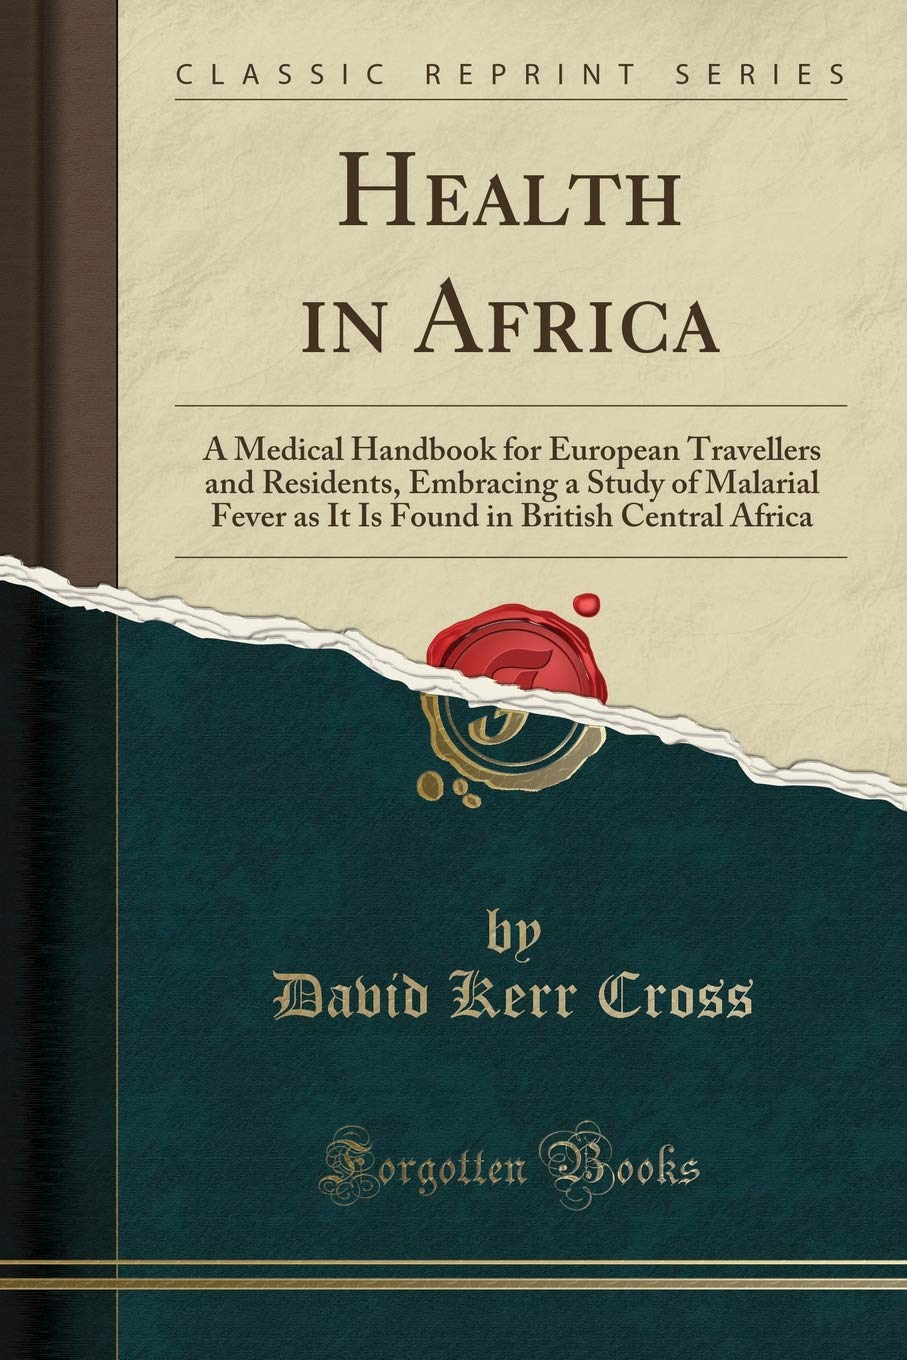 Health in Africa: A Medical Handbook for European Travellers and Residents, Embracing a Study of Malarial Fever as It Is Found in British Central Africa (Classic Reprint) ebook